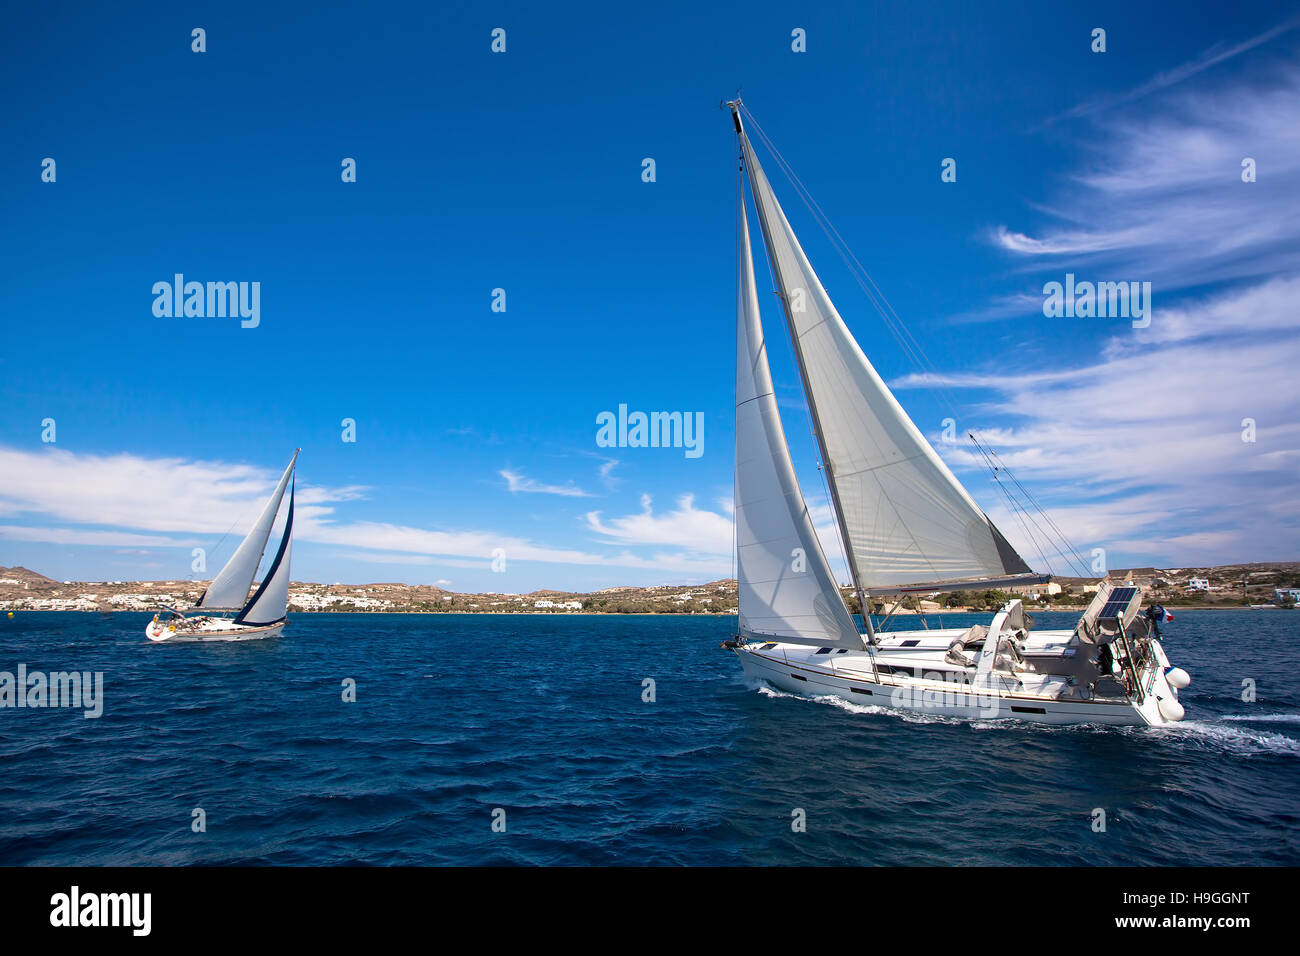 Luxury yachts at Sailing regatta in the wind through the waves at the Mediterranean Sea. - Stock Image